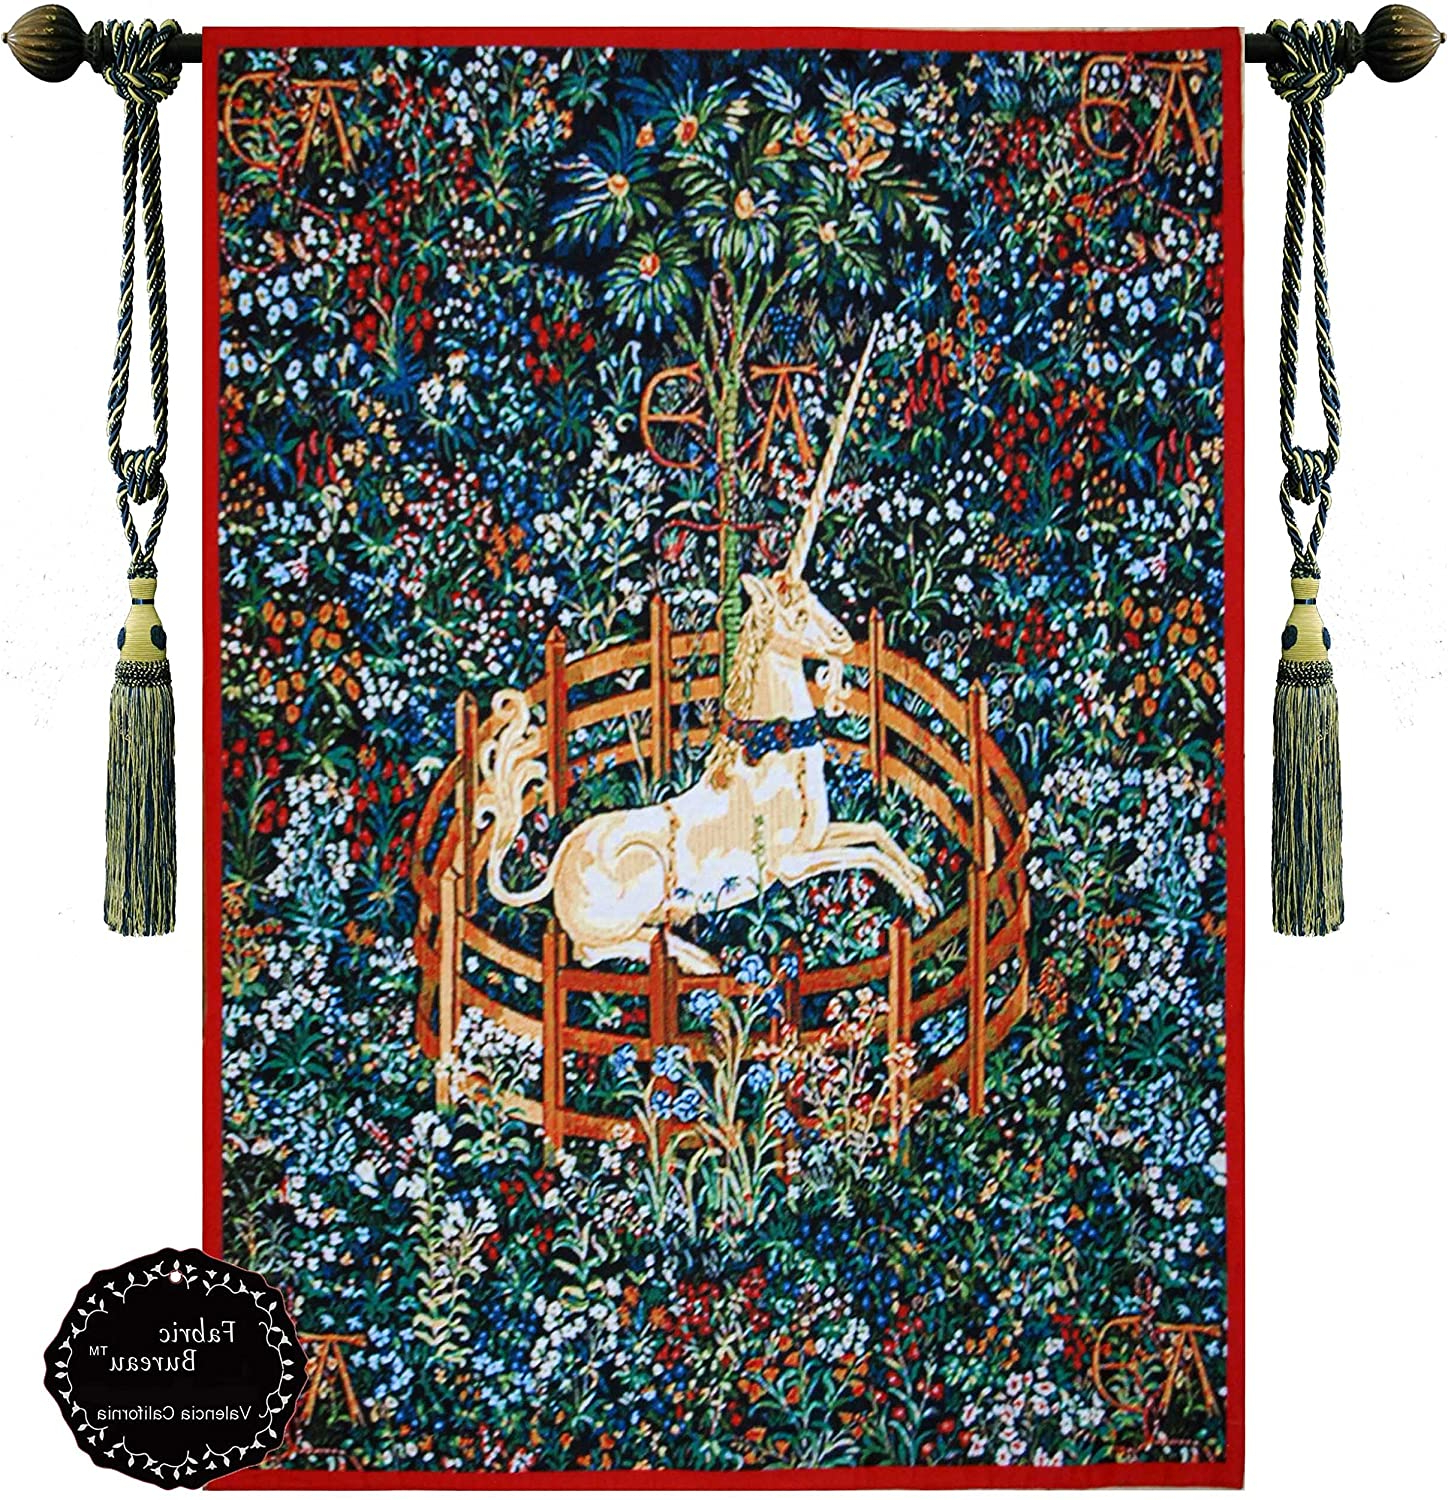 Blended Fabric Unicorn Captive And Unicorn Hunt Wall Hangings In Widely Used Decor Plus Unicorn In Captivity One Of The Series Of Seven Tapestries The Hunt Of The Unicorn Jacquard Woven Wall Hanging Tapestry (yw007) (red, (View 2 of 20)